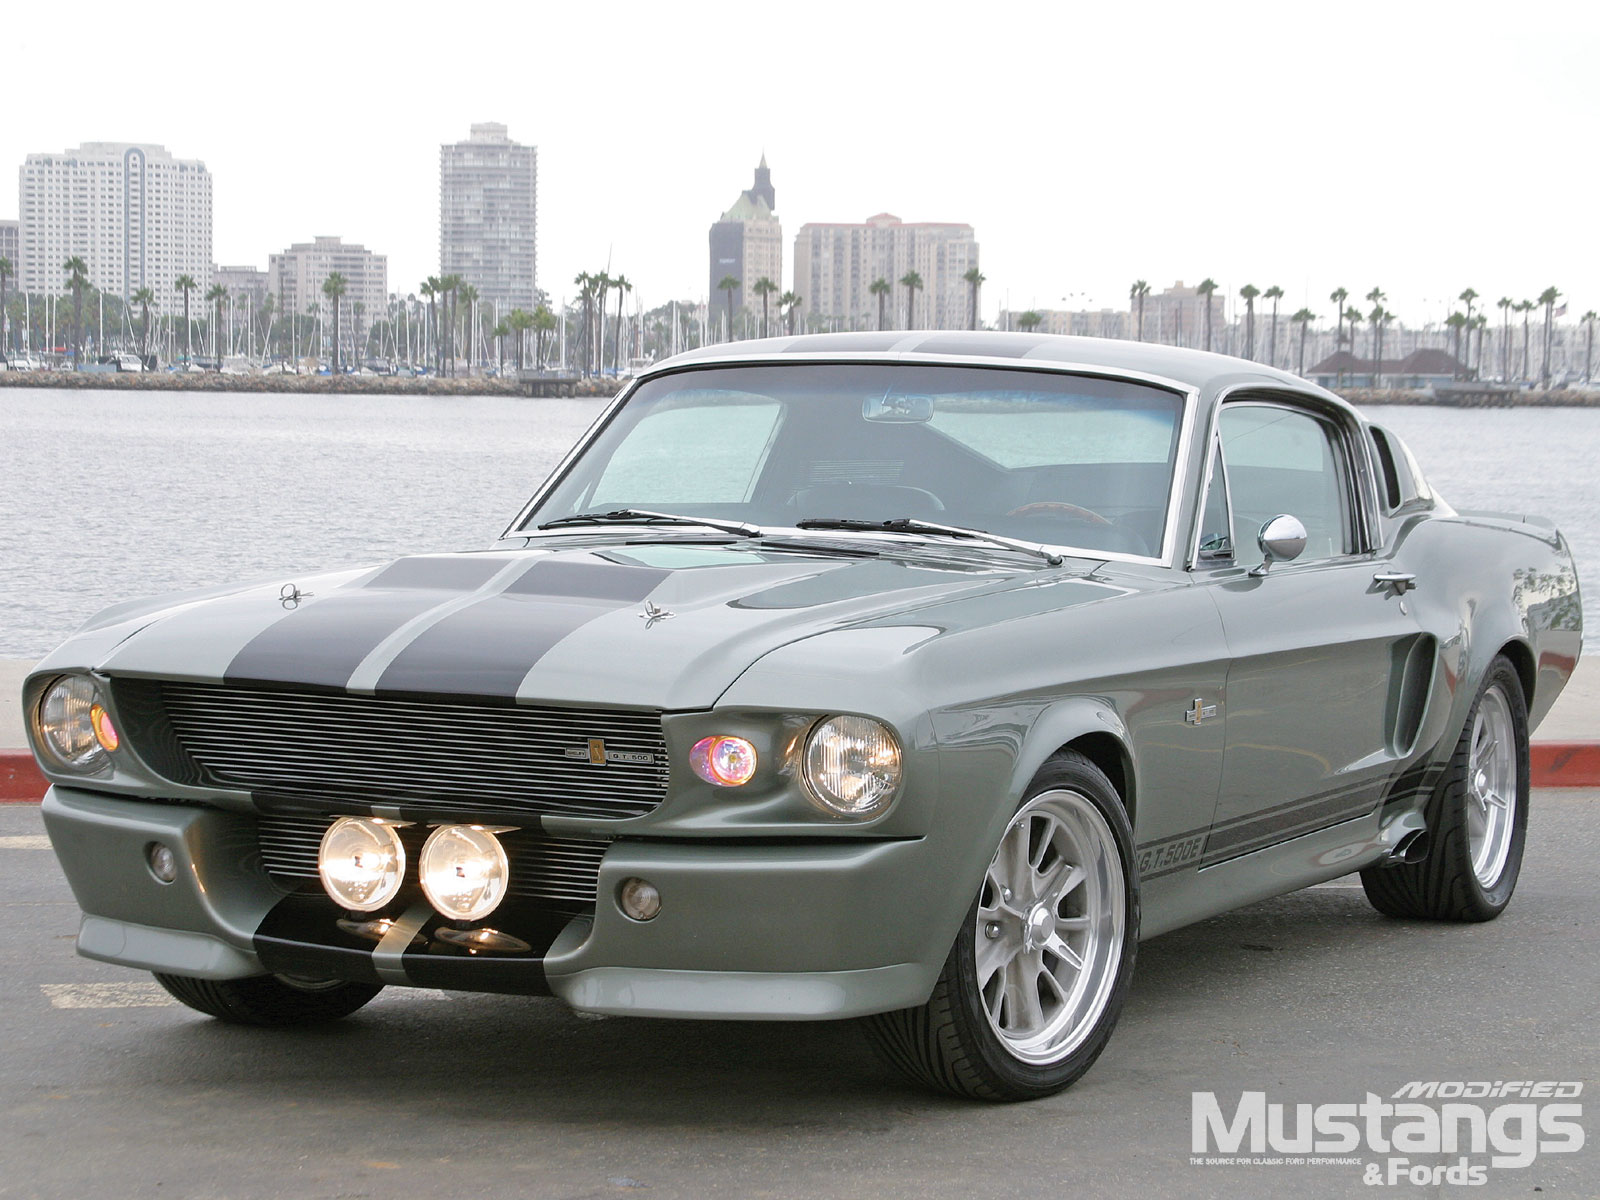 1967 Mustang Eleanor Replica Front Angle